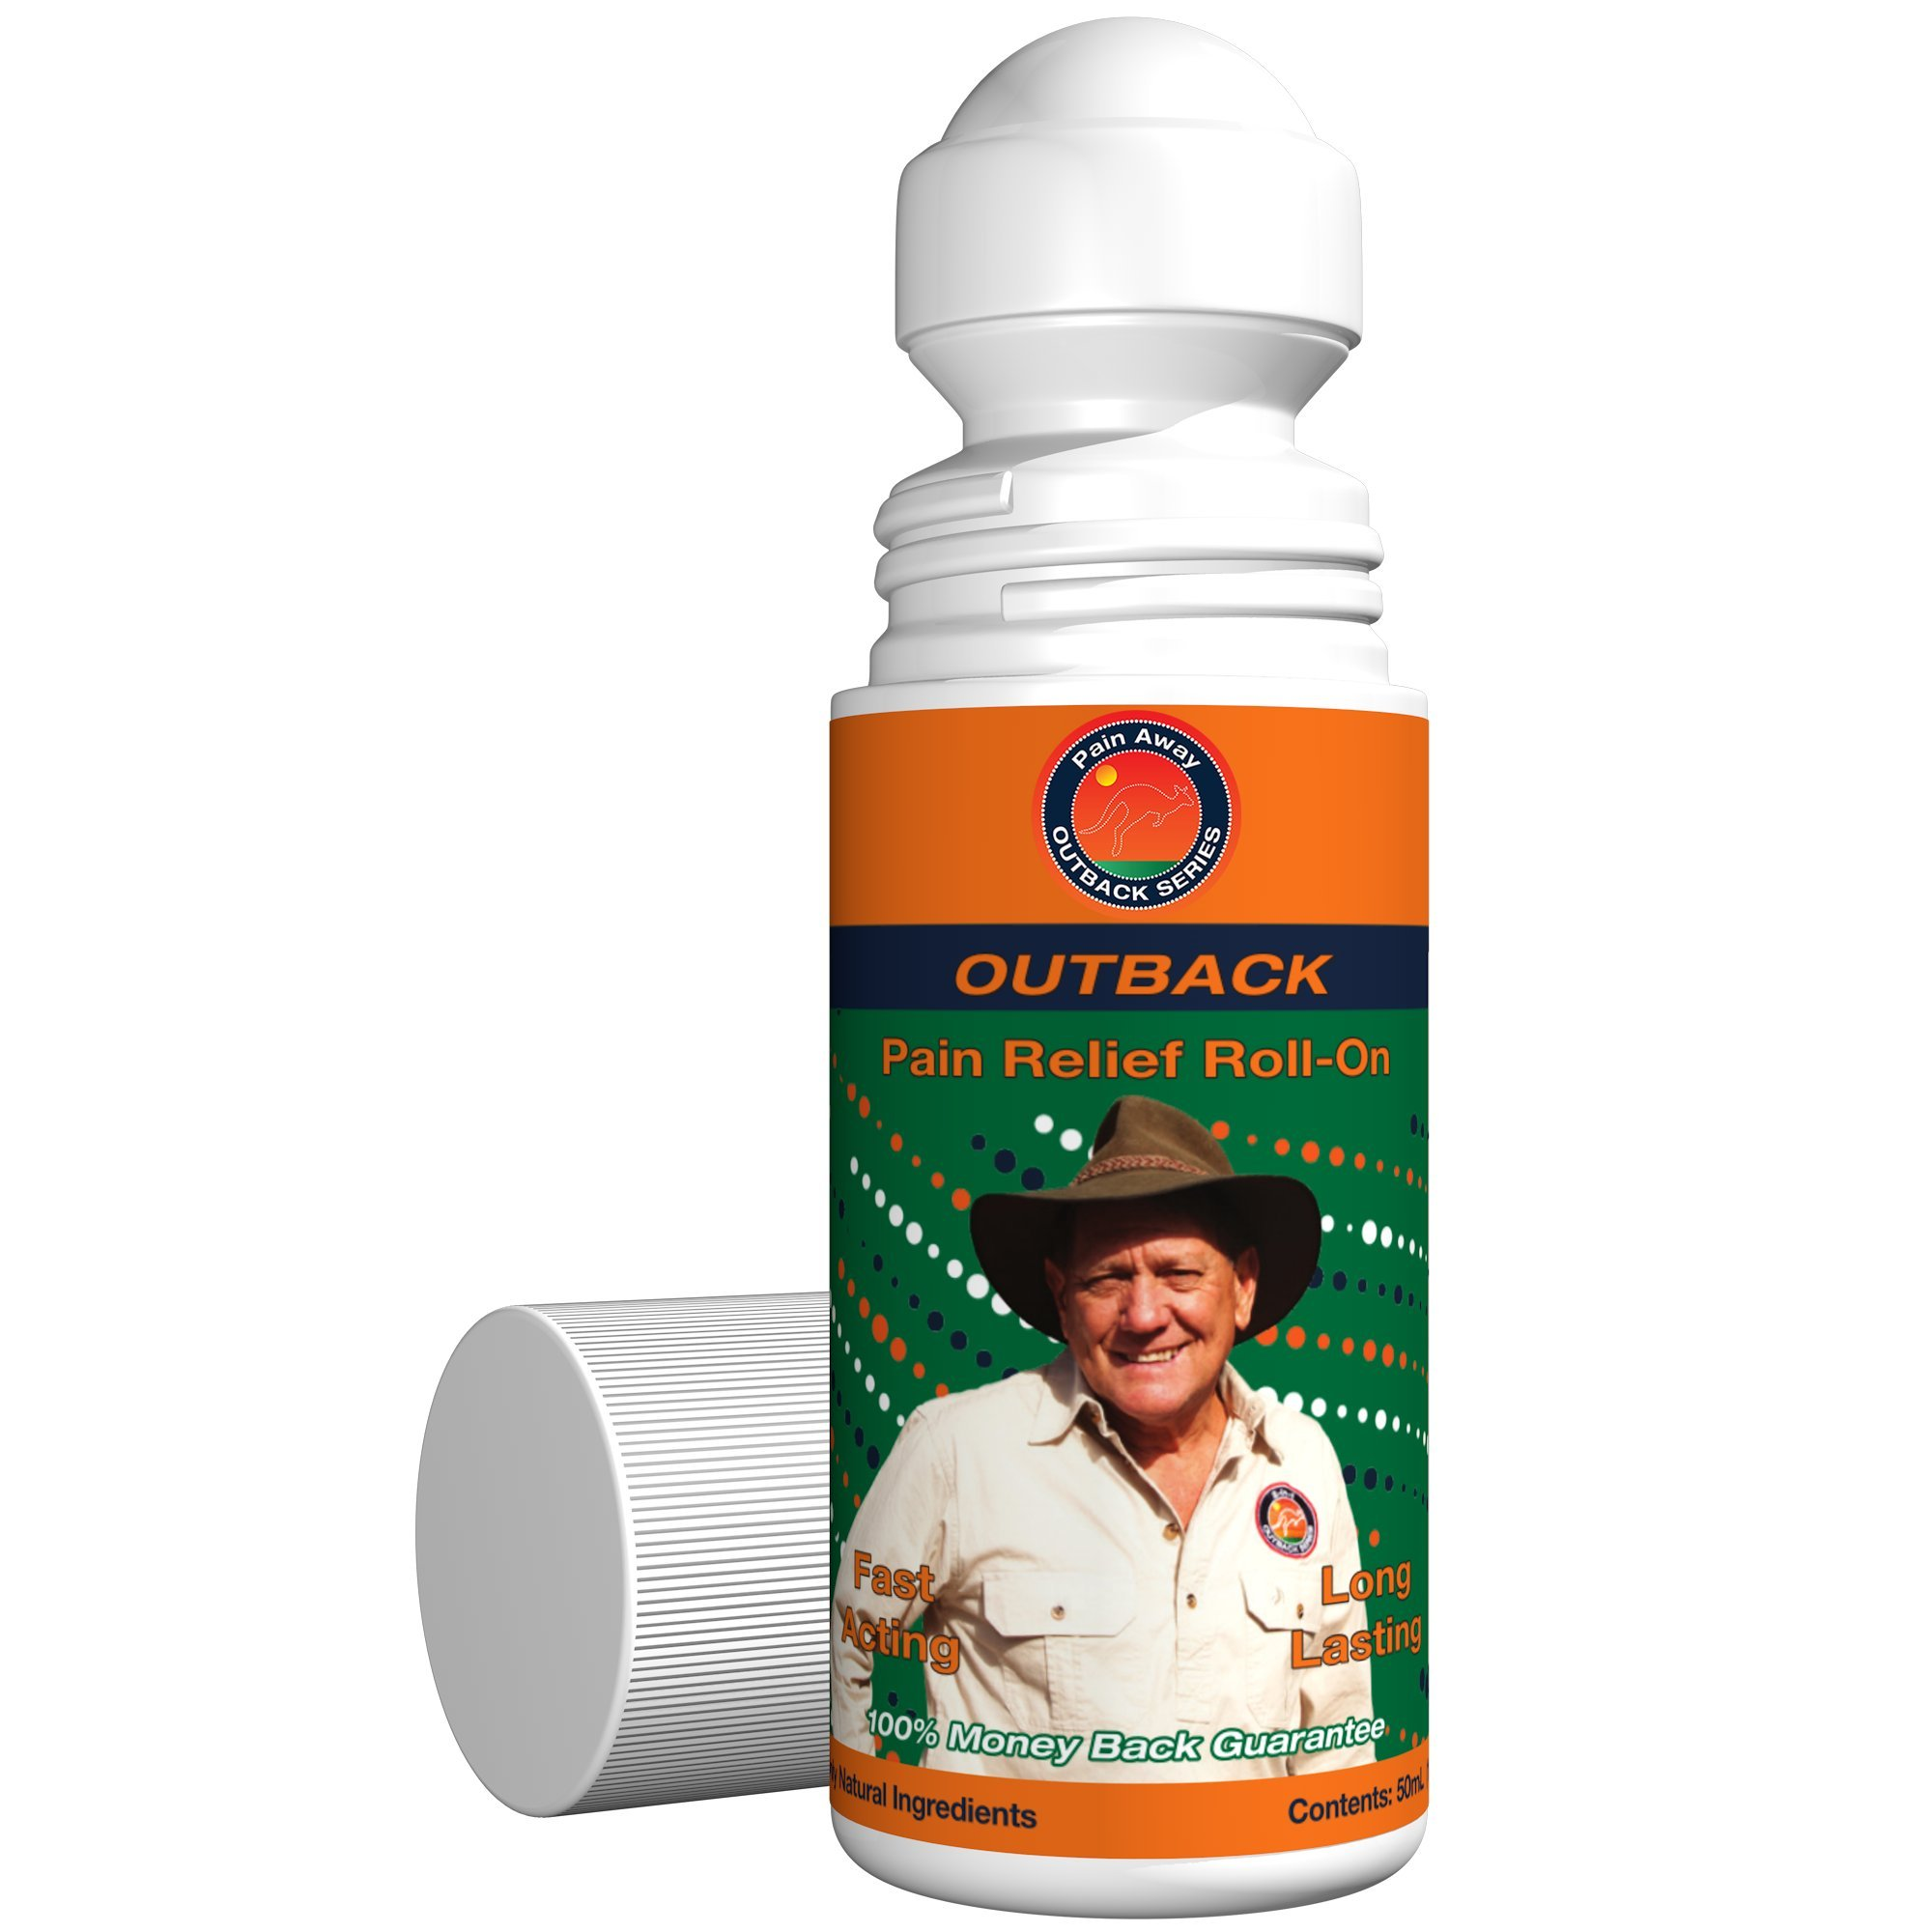 Outback All-Natural Pain Relief  50mL Roll-On (1.69 fl oz)  Topical Oil Chosen By Sufferers of Neuropathy, Arthritis, Fibromyalgia, Plantar Fasciitis, Back Pain, Sciatica, Tendonitis & Tennis Elbow